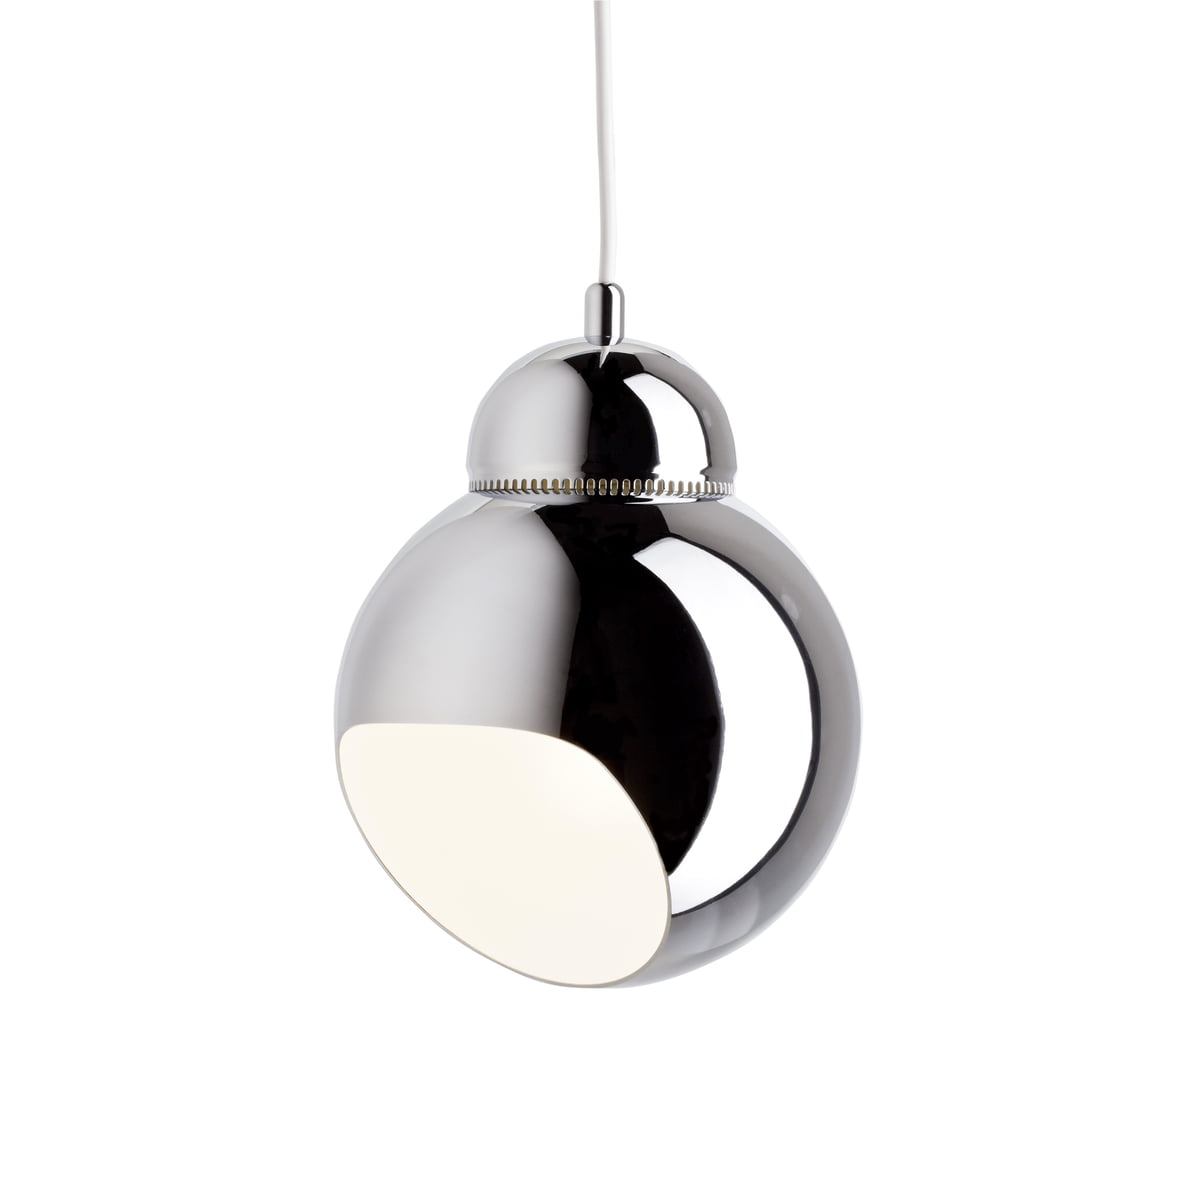 Suspension lumineuse bilberry a 338 artek for Suspension lumineuse